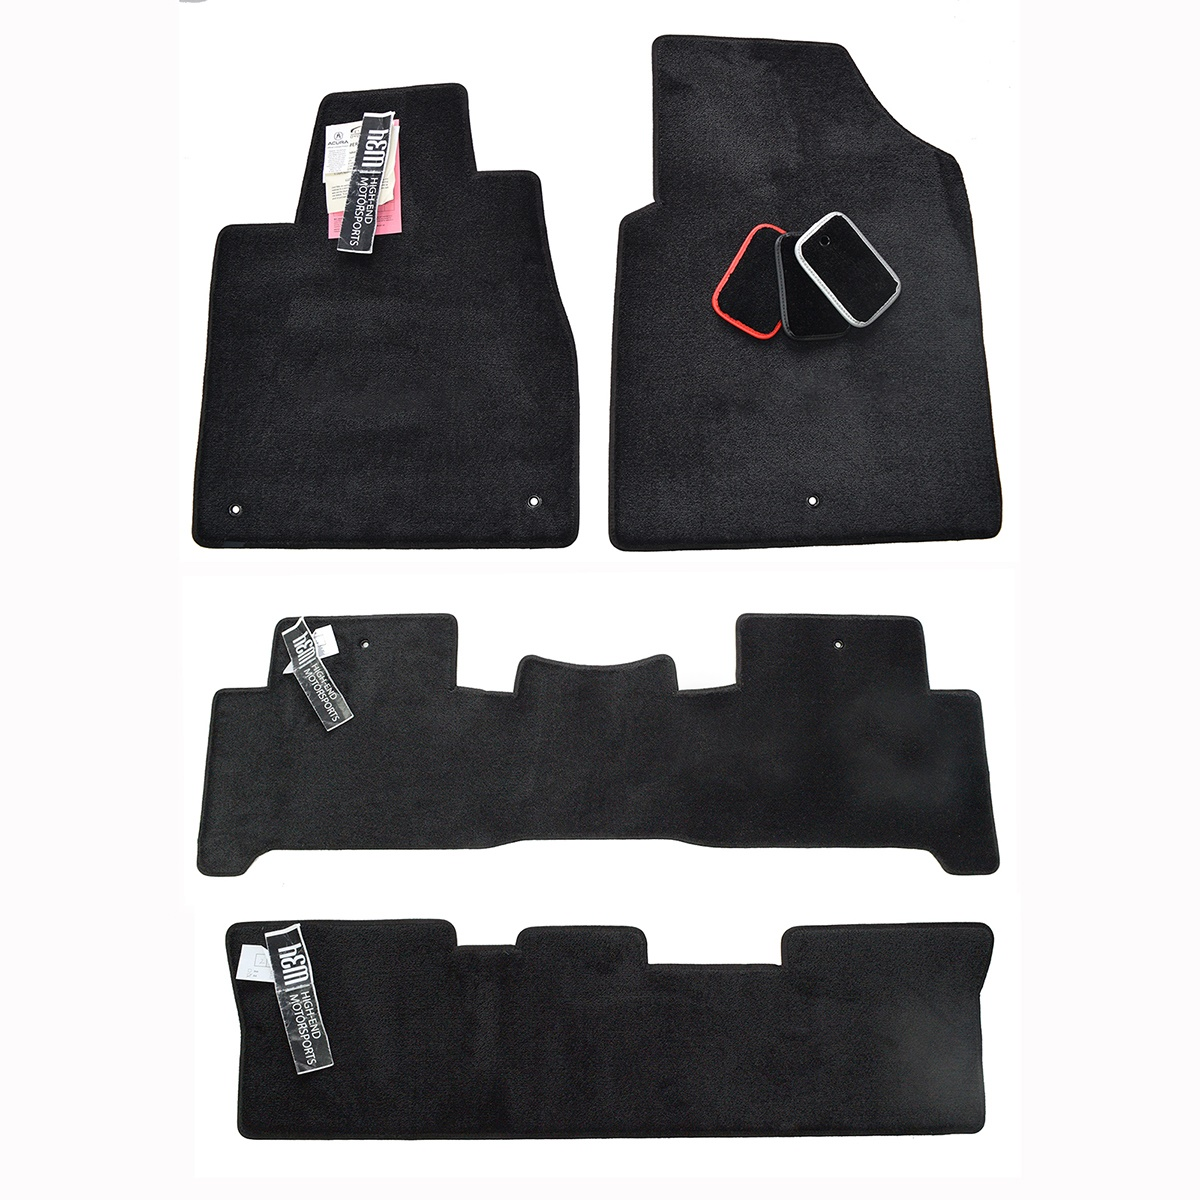 floor duty mats rear systems country pickup chevrolet m rough front floors suspension sierra for mat gmc gm fitted silverado set heavy base